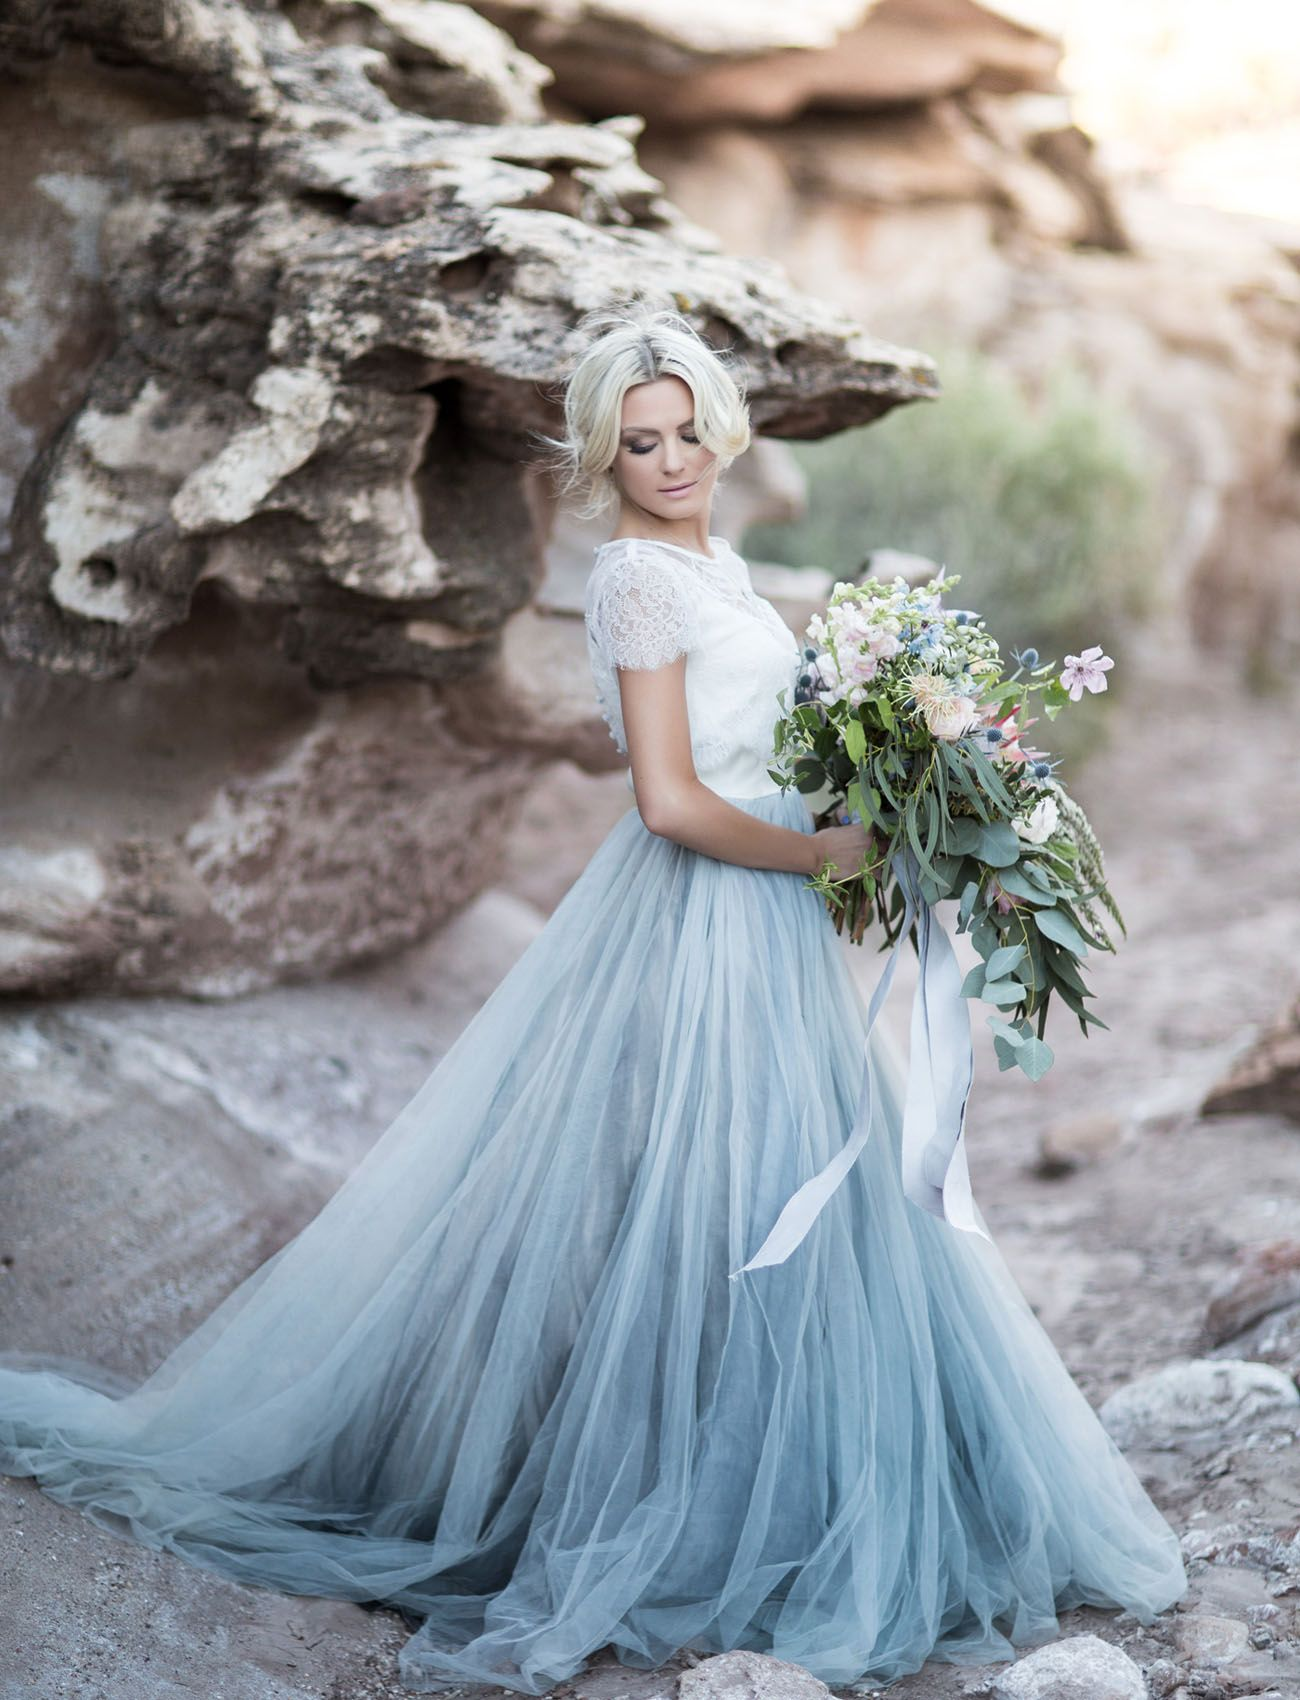 5dbd2e91031 Chantel Lauren Designs wedding dress with a blue tulle skirt